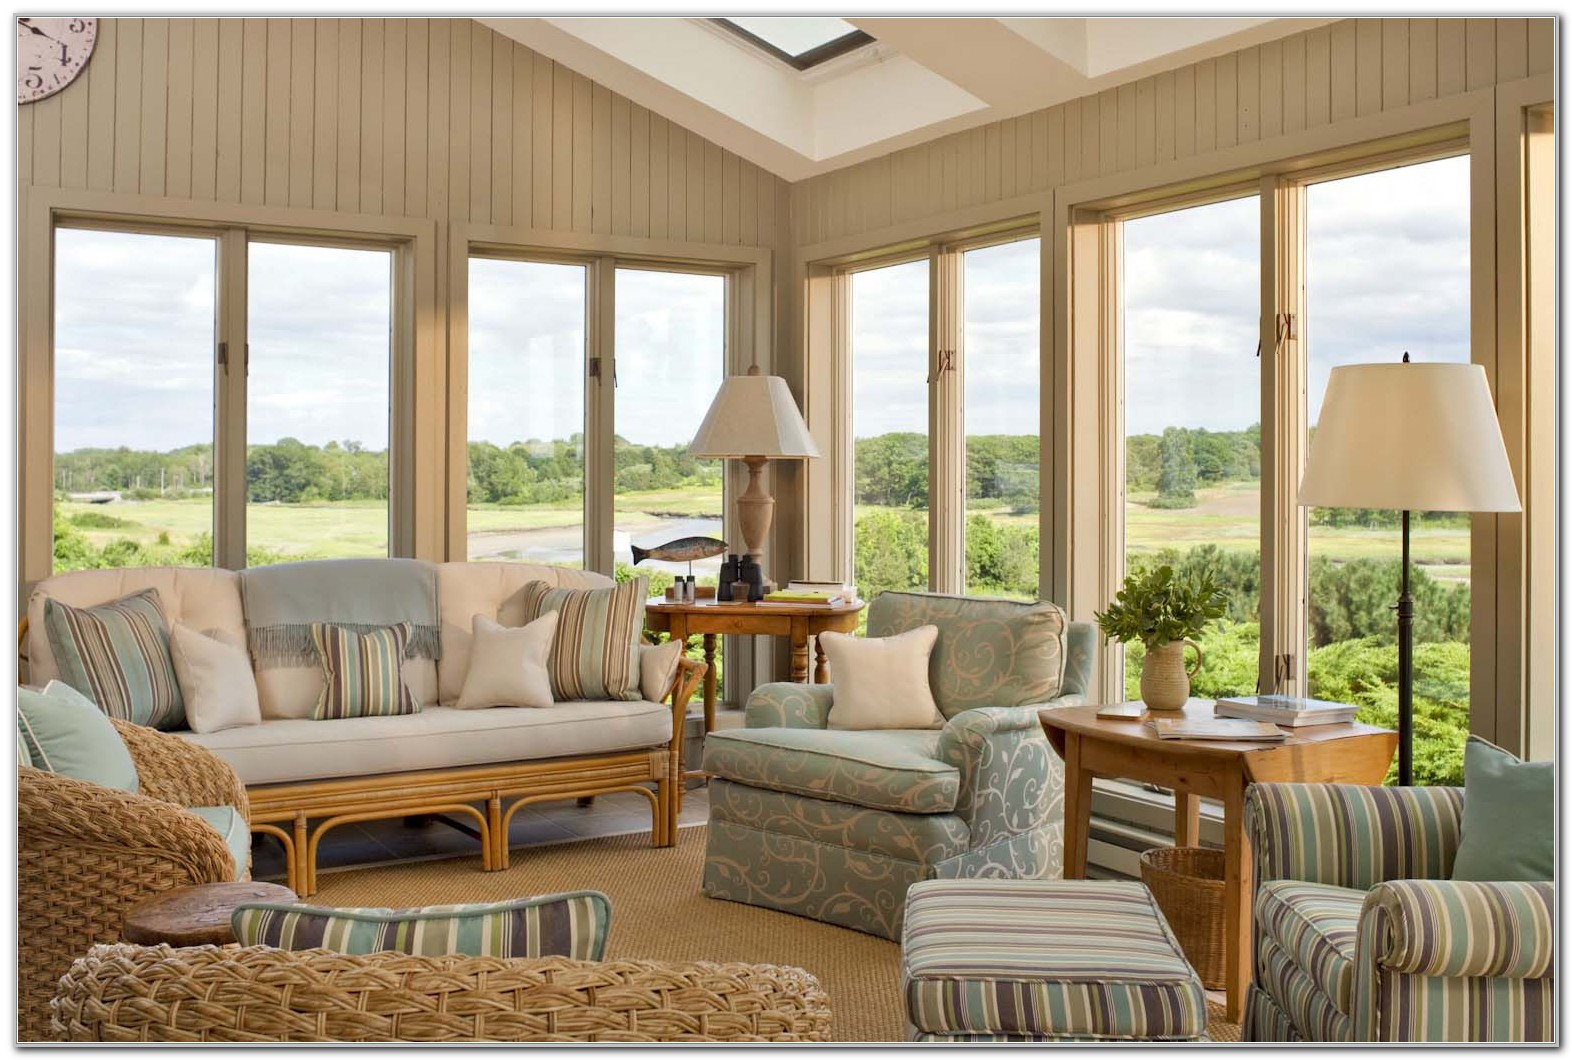 Interior Decorating Ideas For Sunrooms